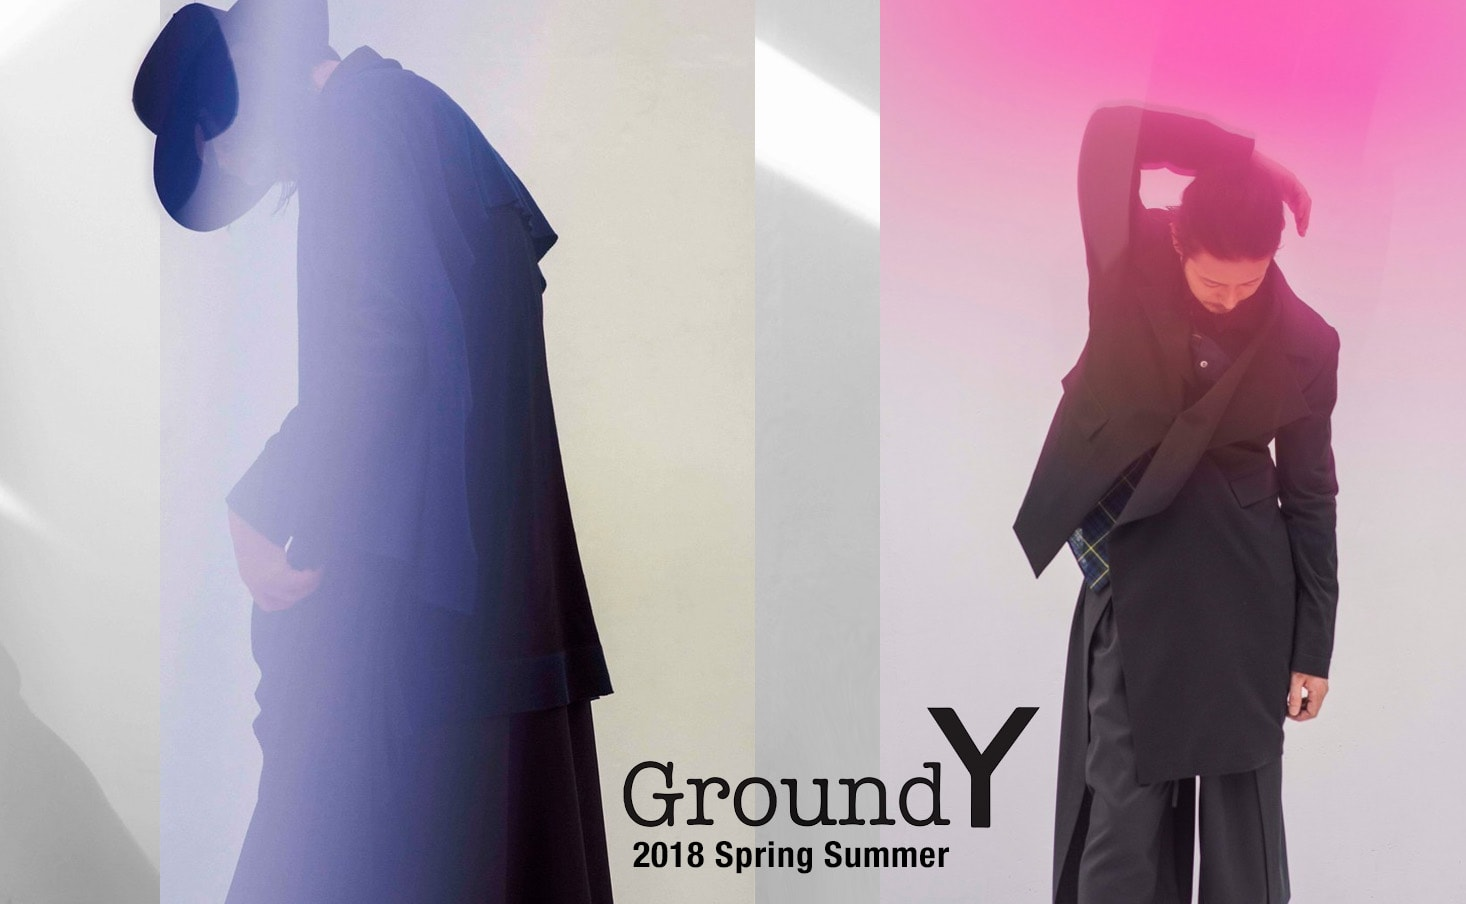 ground y 2018 Spring Summer Collection